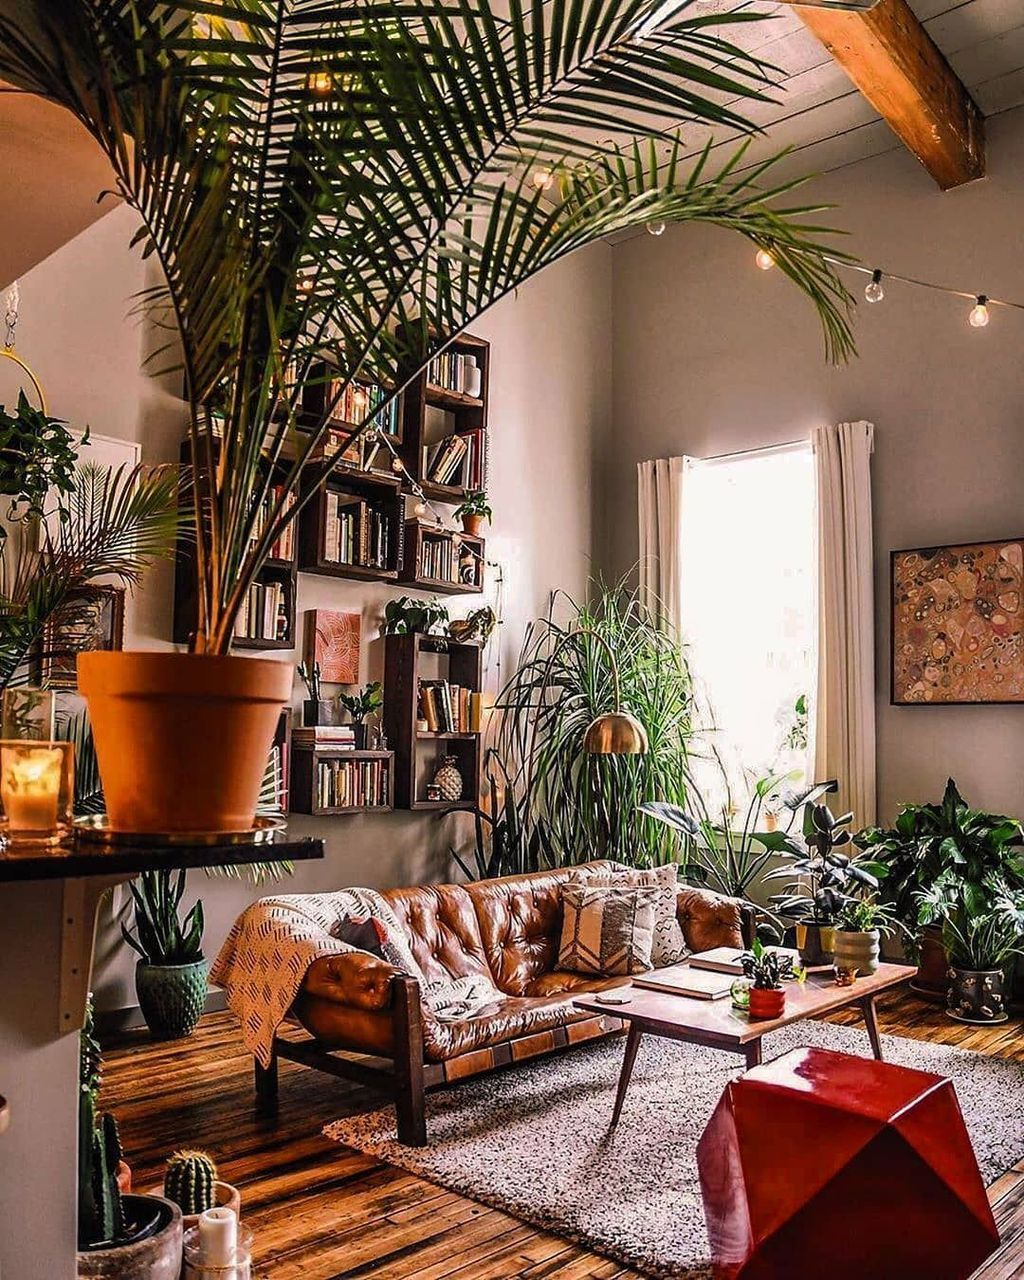 34 The Best Rustic Bohemian Living Room Decor Ideas Homyhomee Bohemian Living Room Decor Bohemian Living Room Hippie Living Room